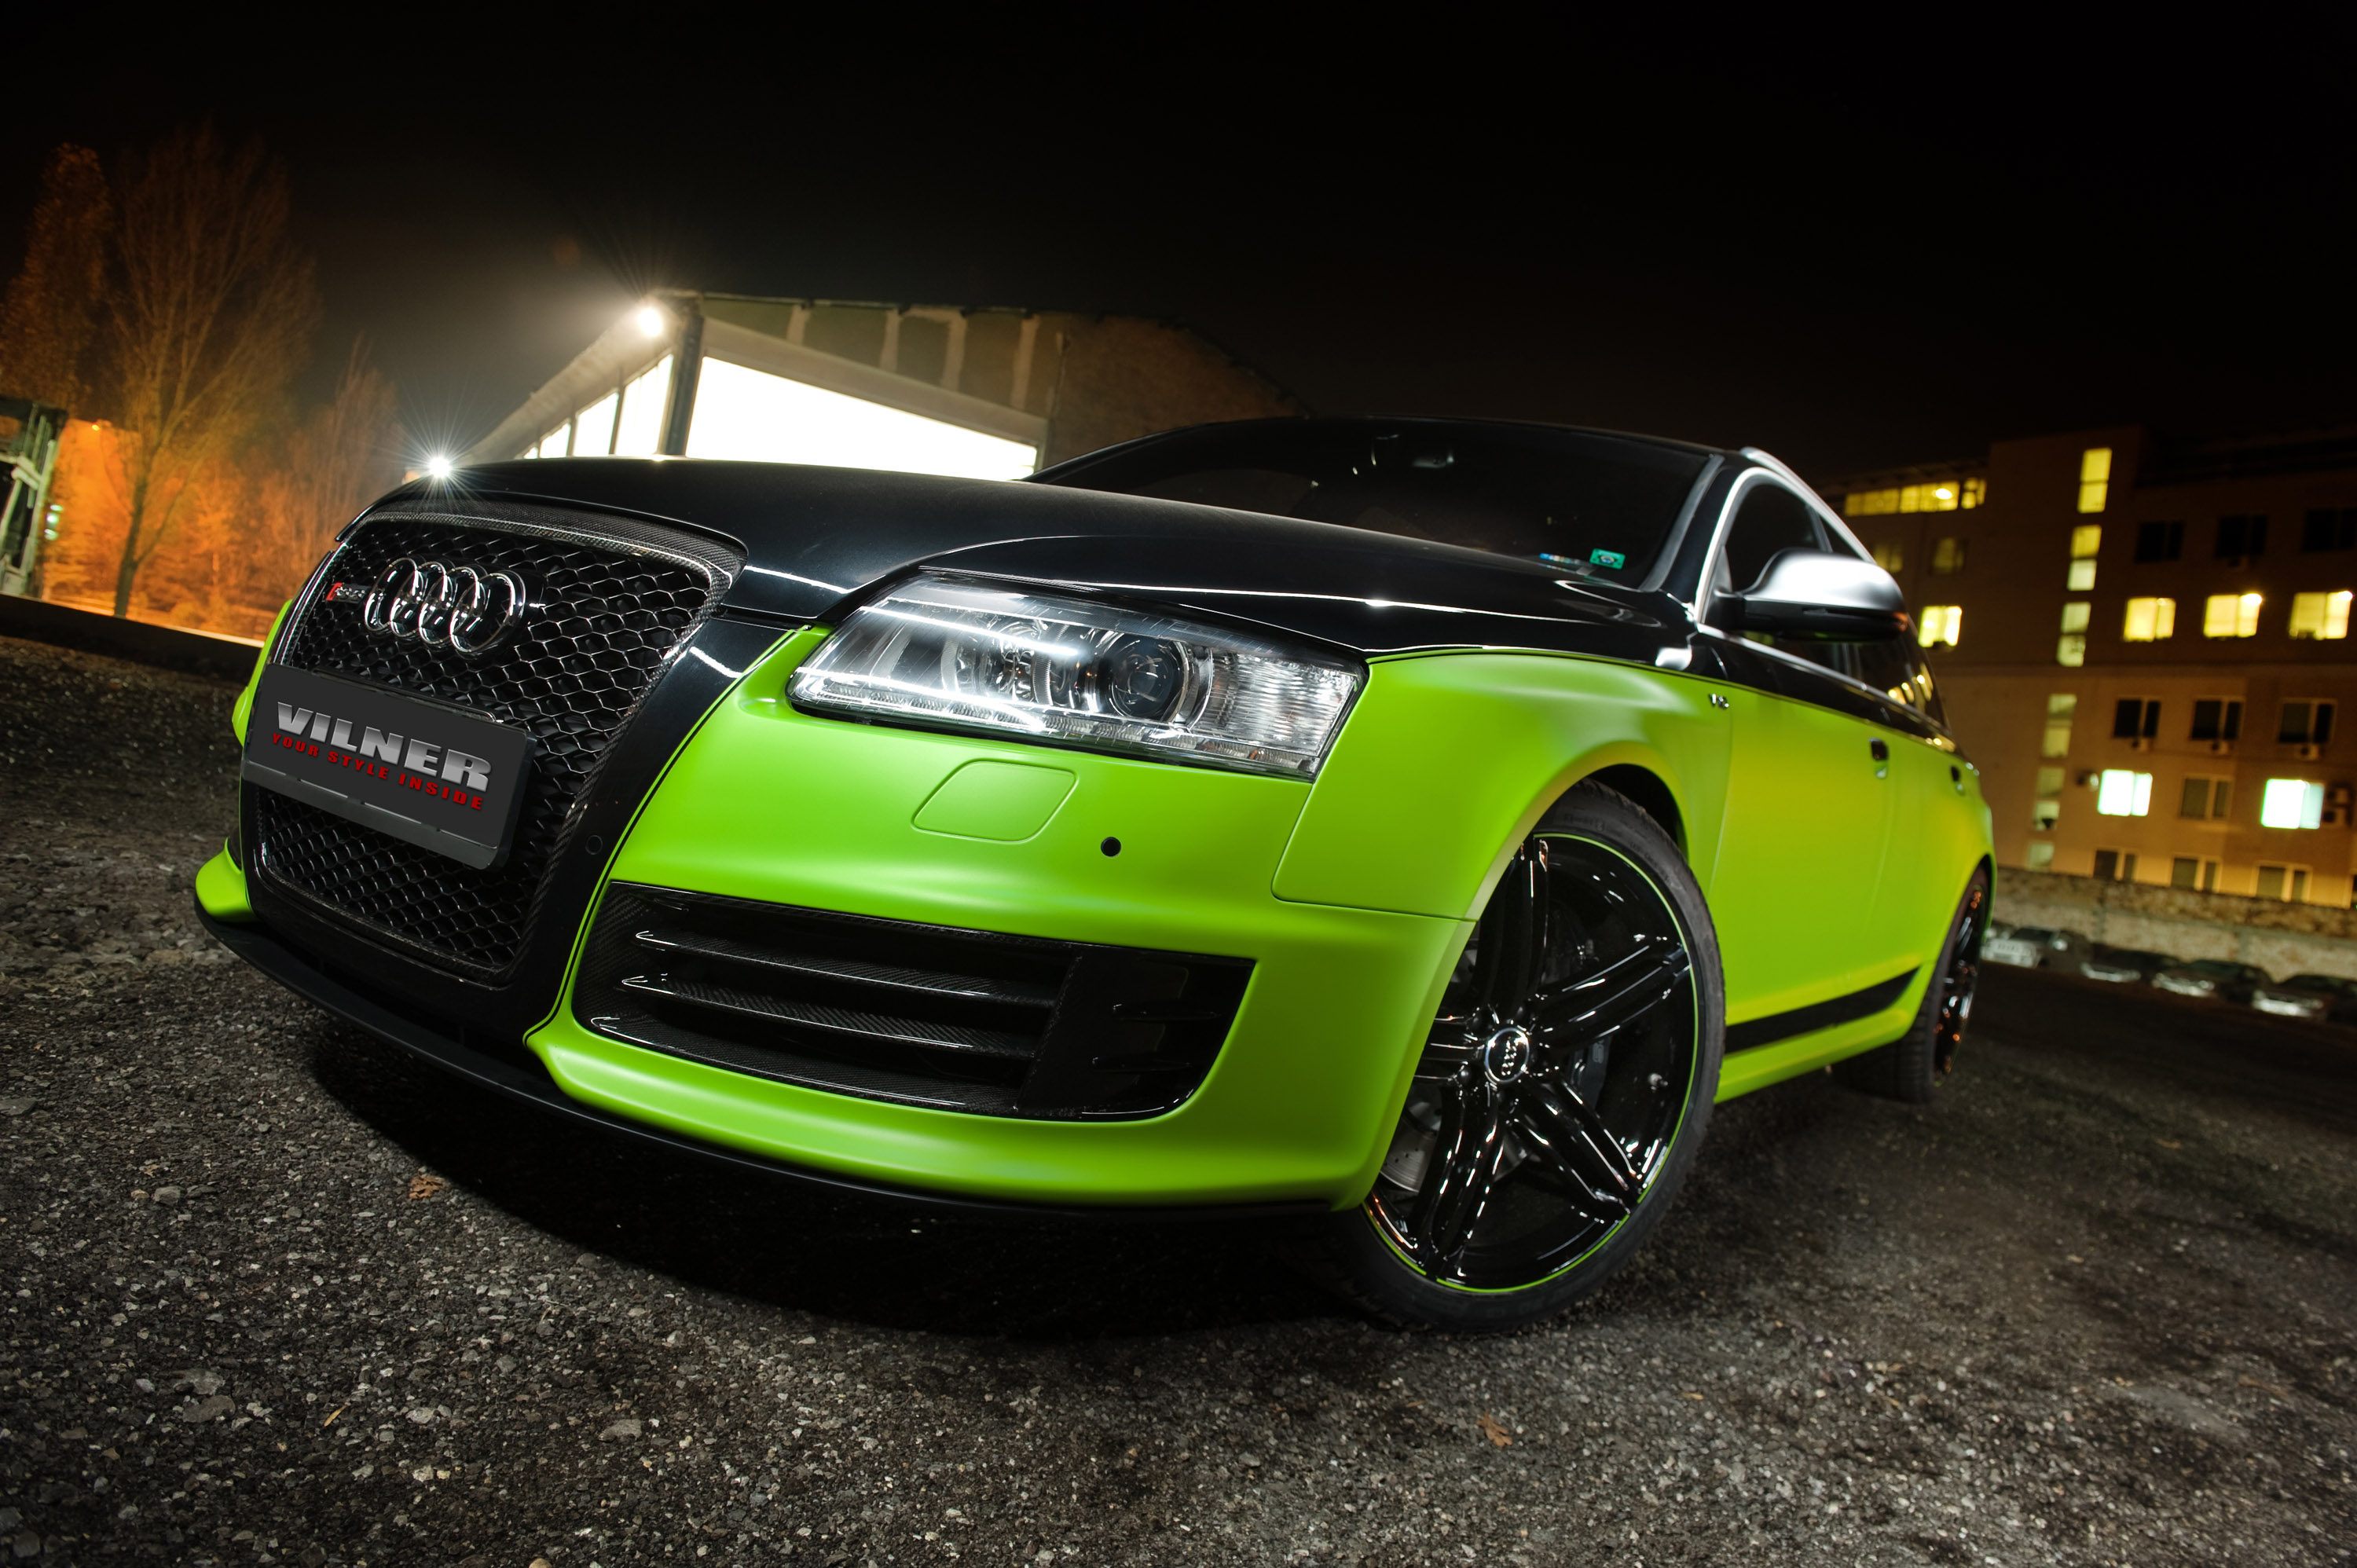 2012 vilner audi rs6 tuning wallpaper 3000x1996 82062 wallpaperup. Black Bedroom Furniture Sets. Home Design Ideas